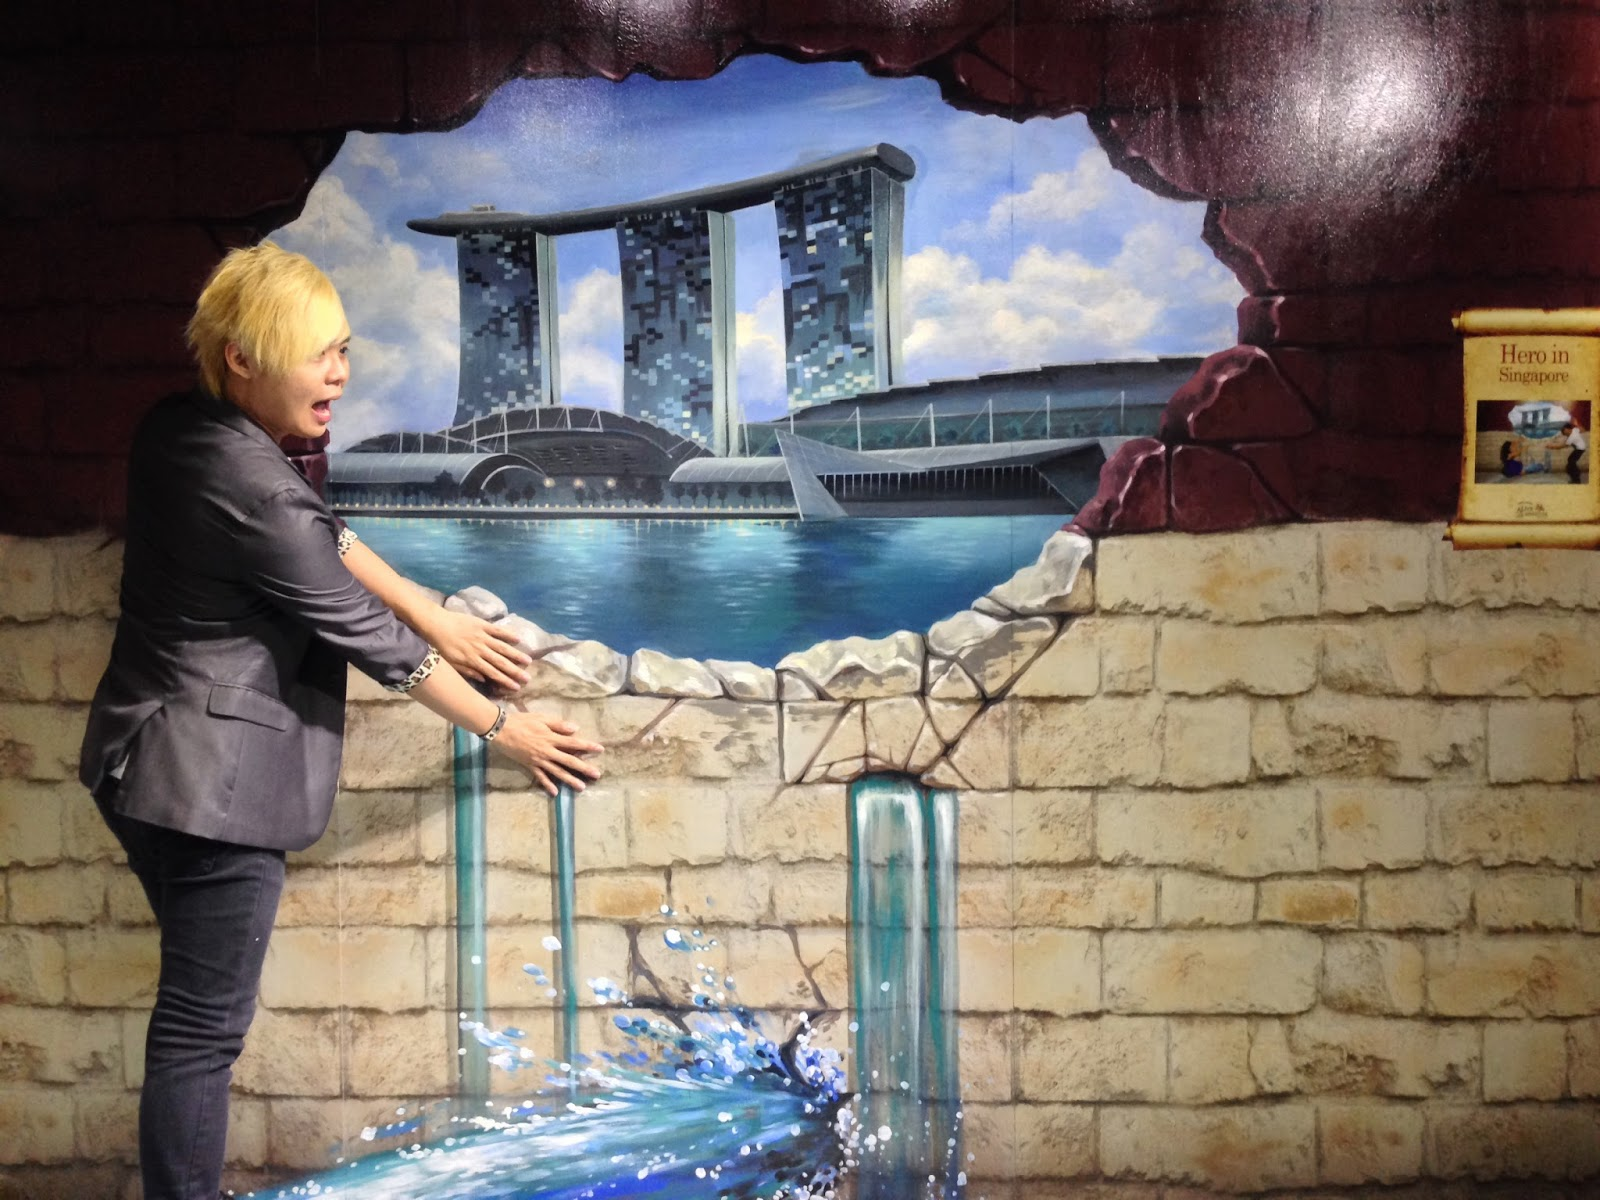 Stopping Marina Bay Sands from leaking